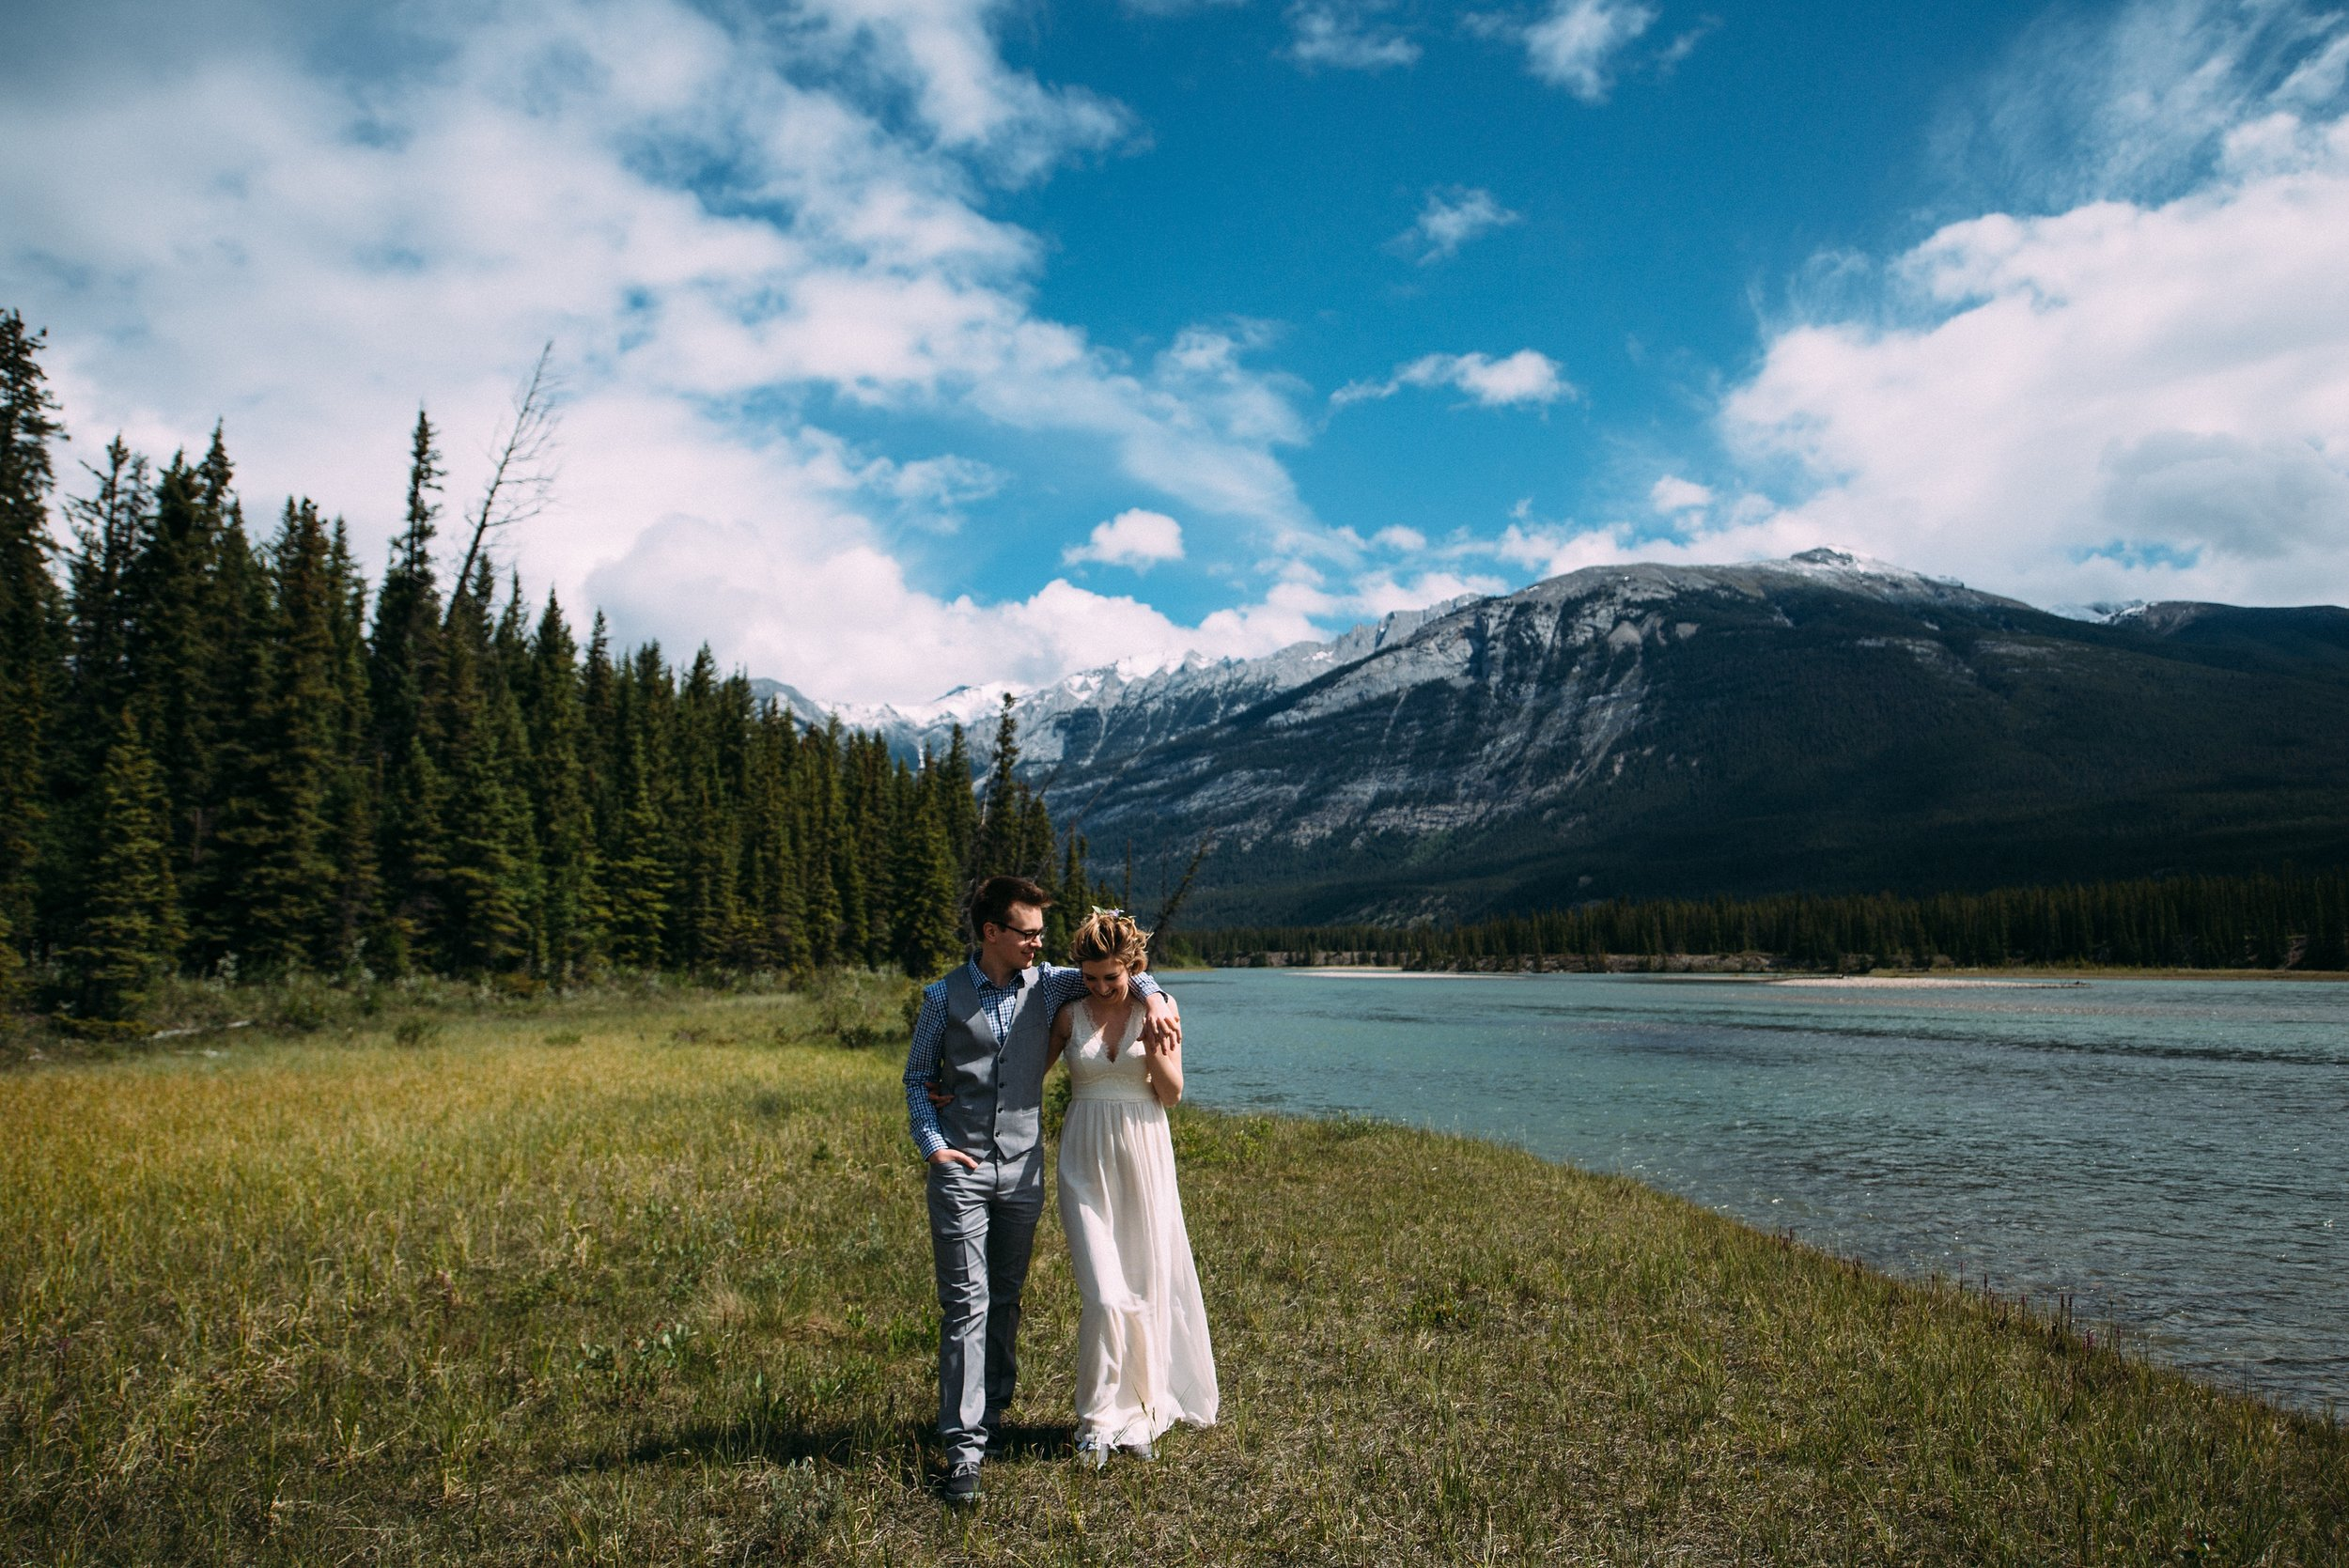 kaihla_tonai_intimate_wedding_elopement_photographer_3811